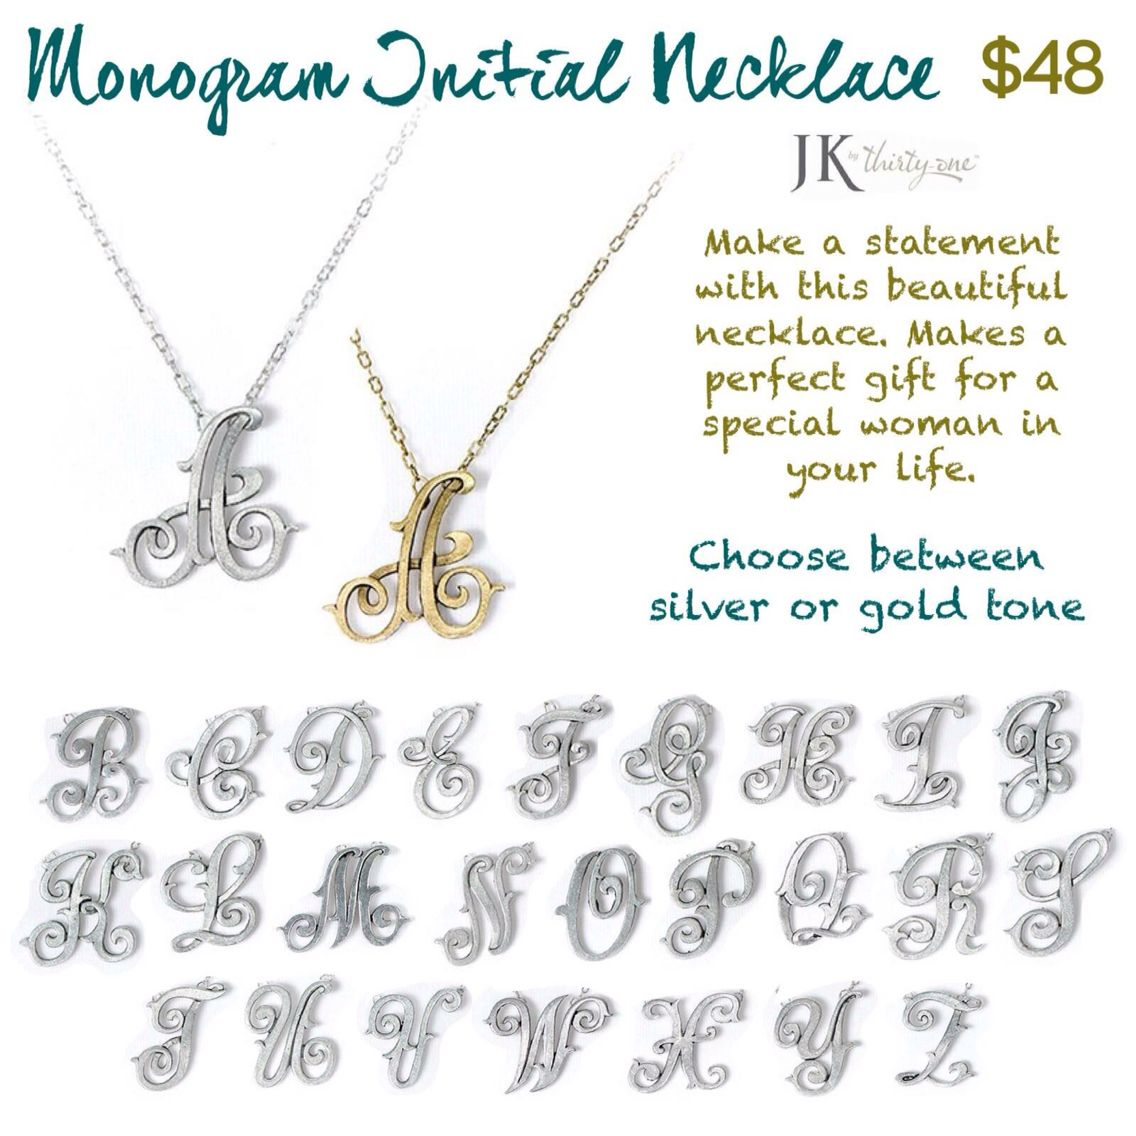 Monogram initial necklace jk by thirty one gifts jkbythirtyonegifts monogram initial necklace jk by thirty one gifts jkbythirtyonegifts mythirtyone aloadofball Gallery